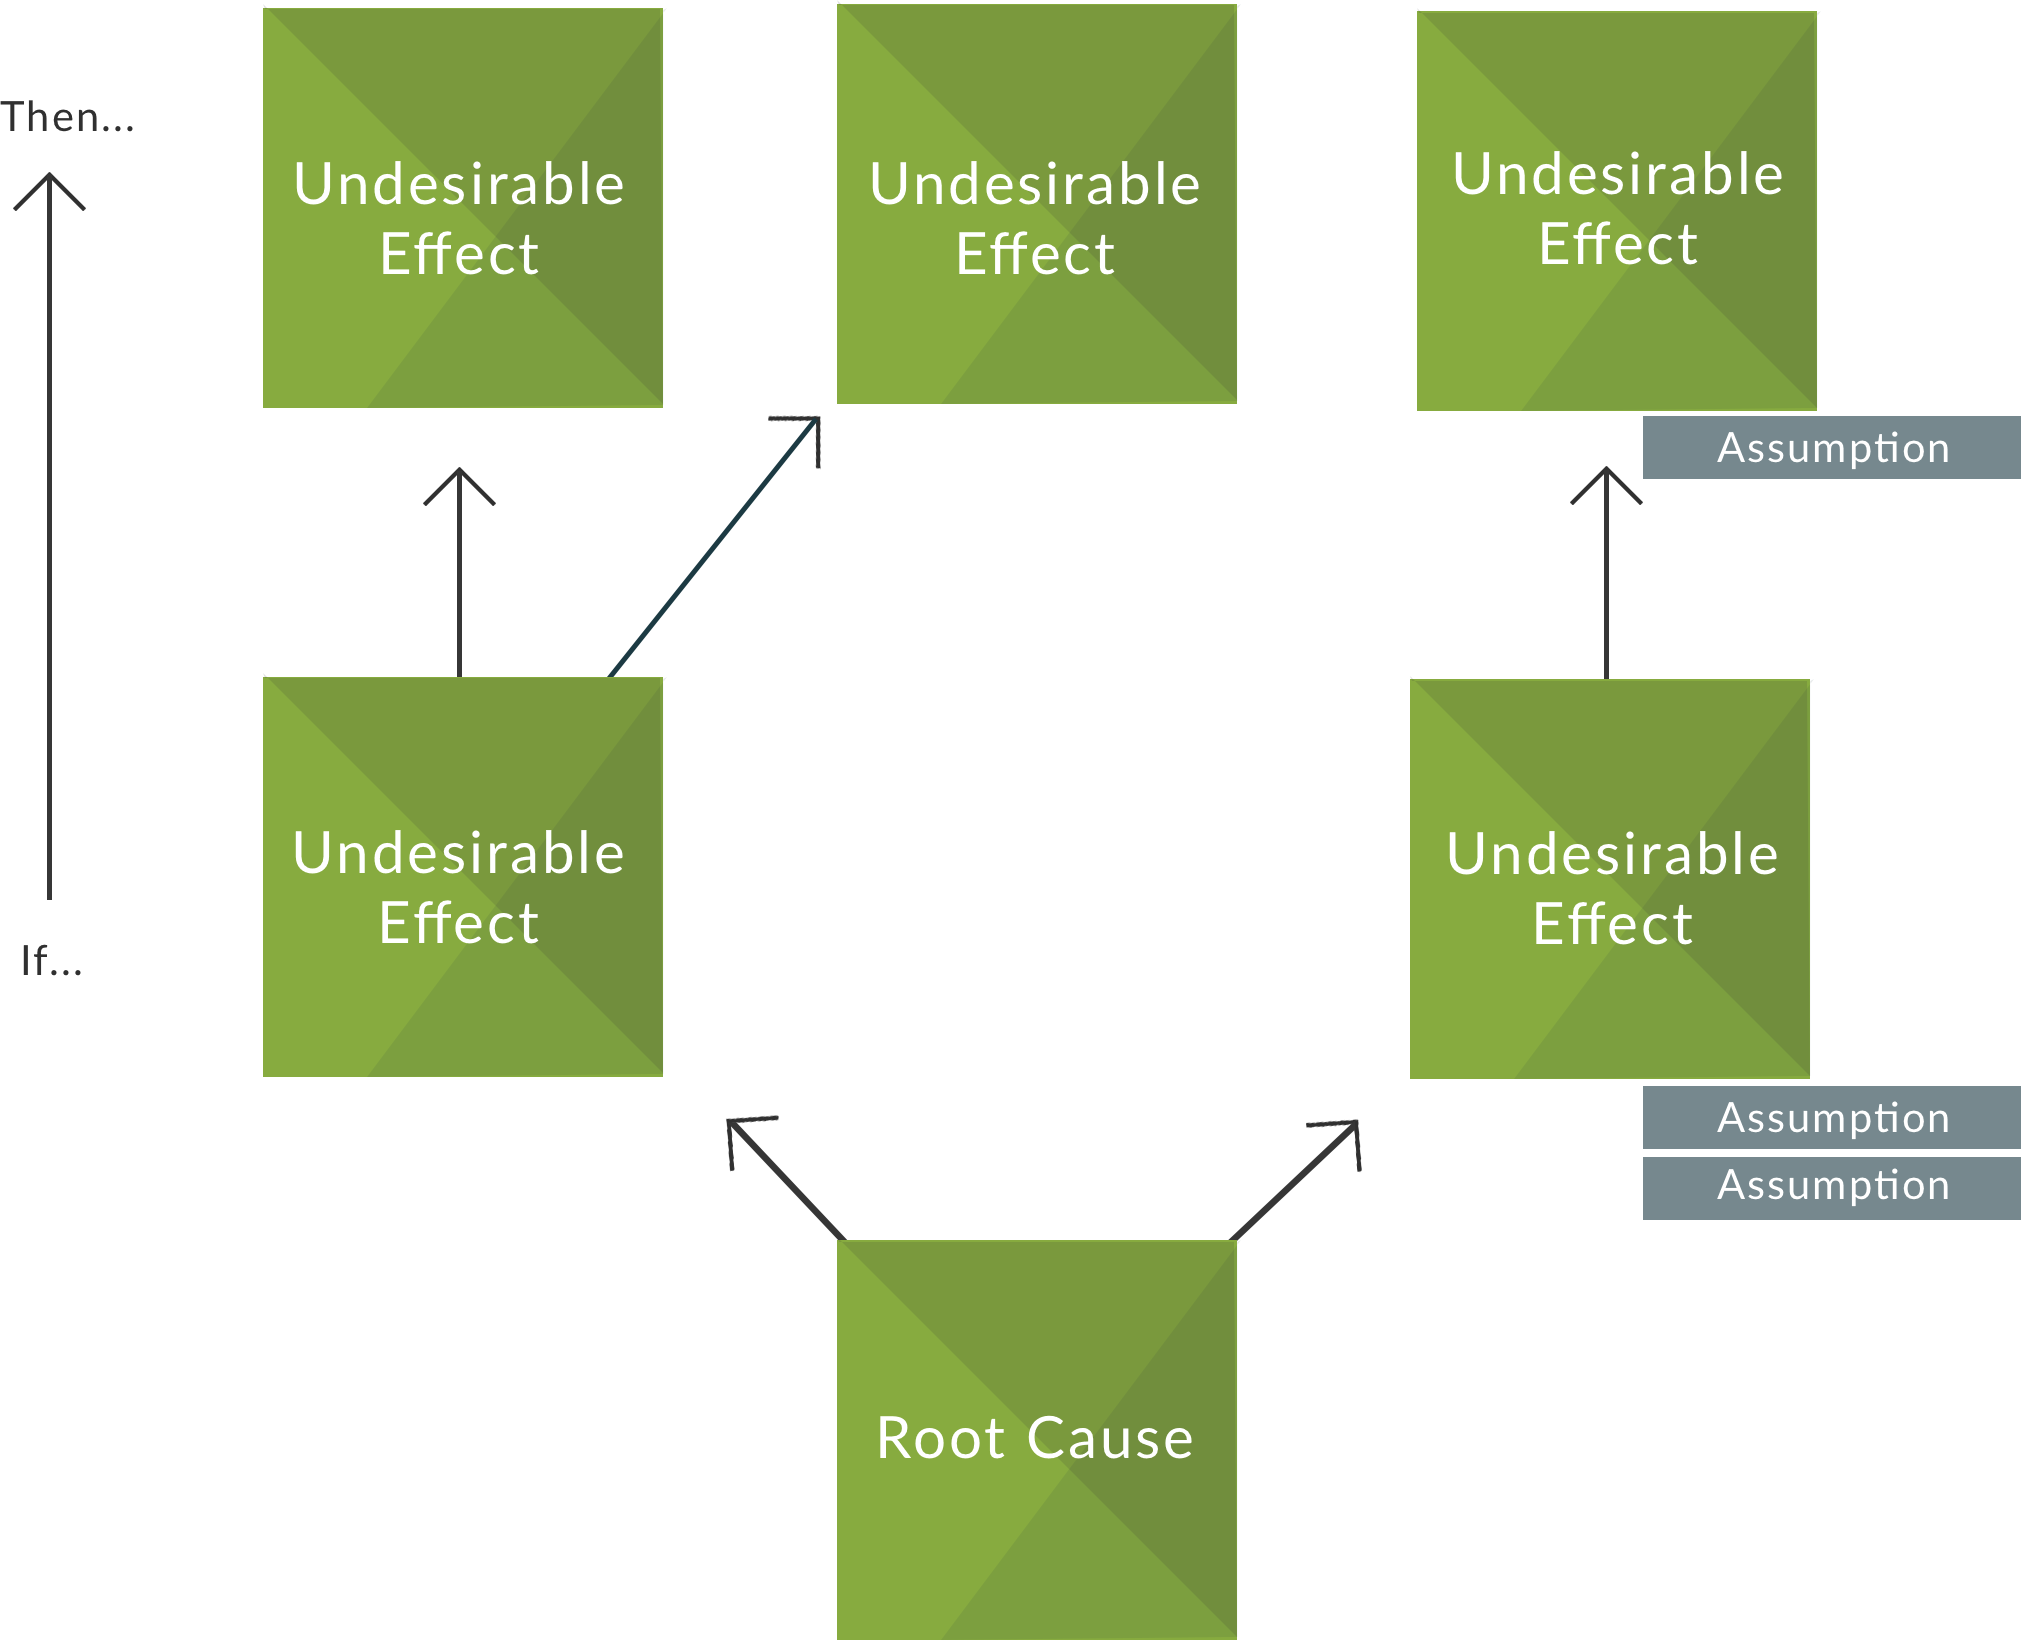 Current_Reality_Tree_Structure.png